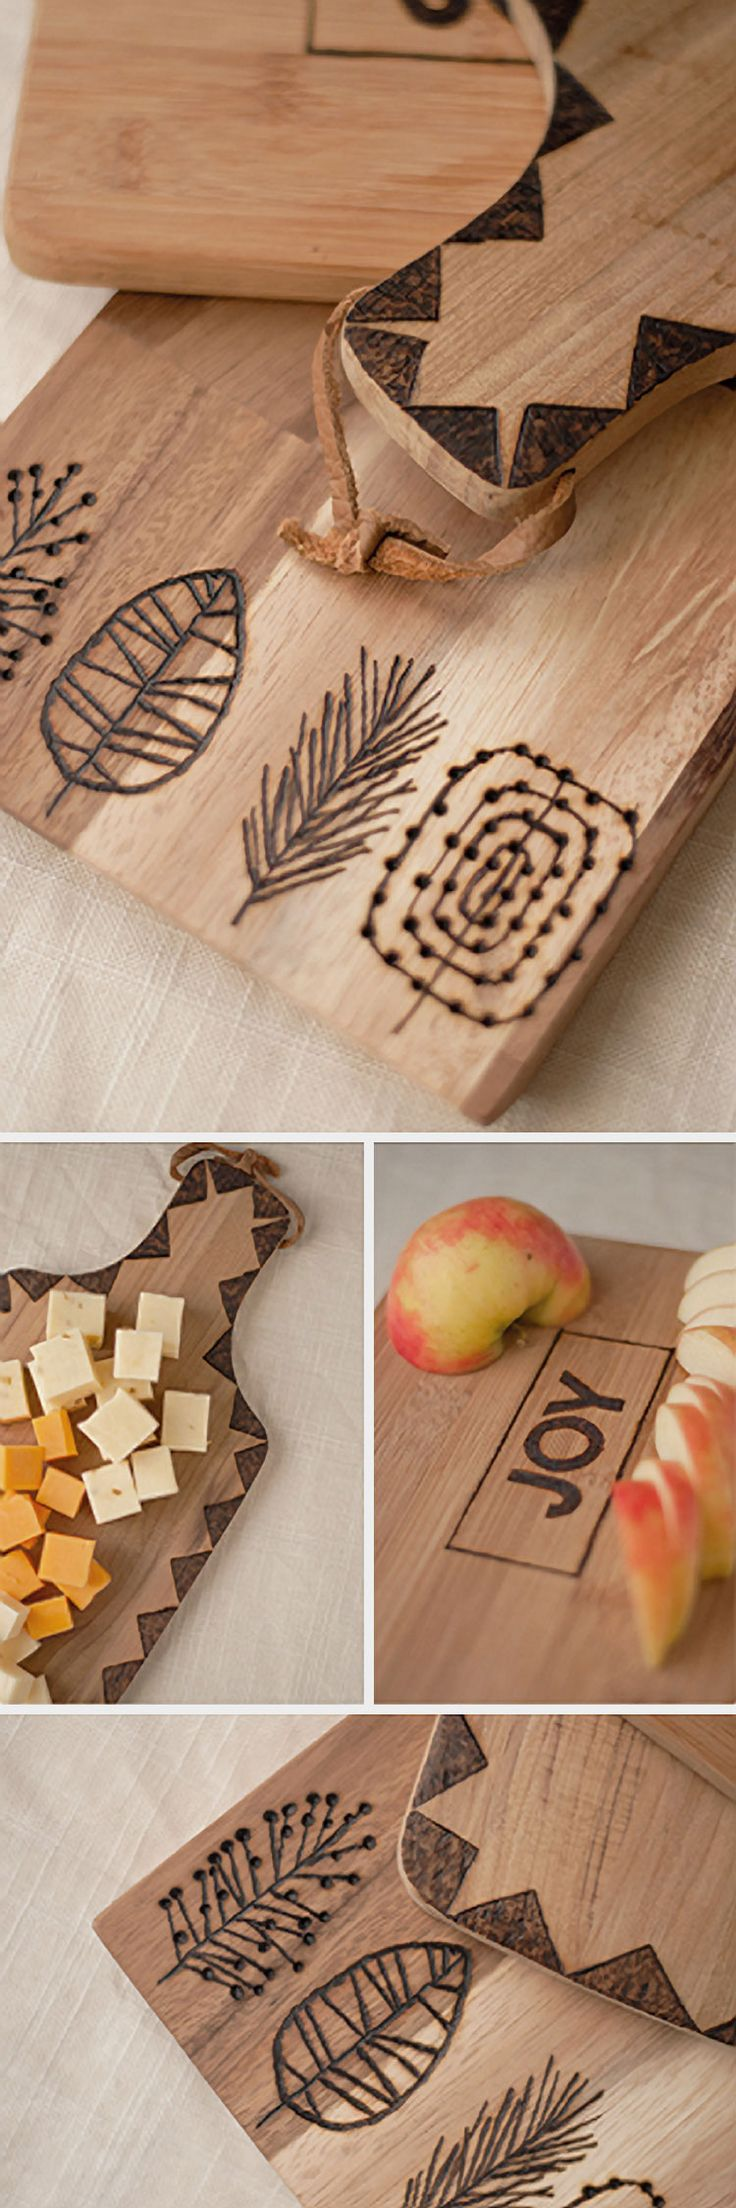 Make your cheese plate simply stunning diy wood slice cutting board - Diy Tutorial Decorate A Chopping Board Using Pyrography Via Dawanda Com